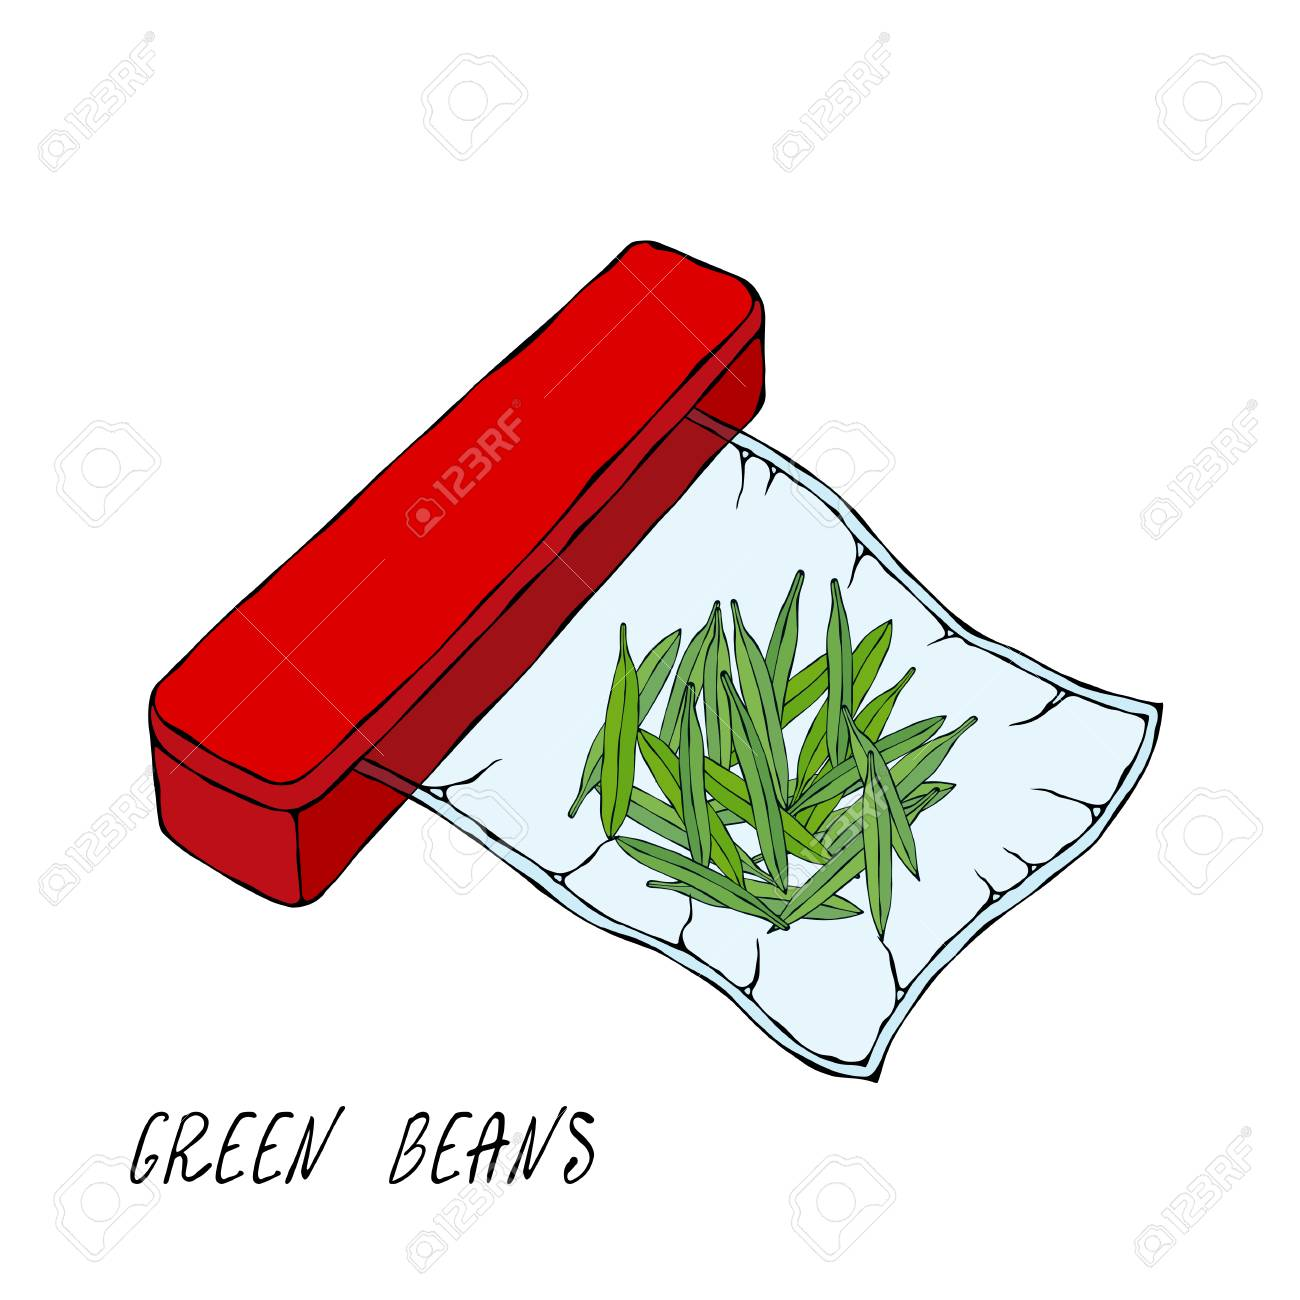 Vacuumizer Food Sealer. Green Beans. For Vegetarians. What is Sous-Vide. Slow Cooking Technology. Chief Cuisine Collection. EPS10 Vector. Hand Drawn Doodle Style Realistic Illustration - 126959100